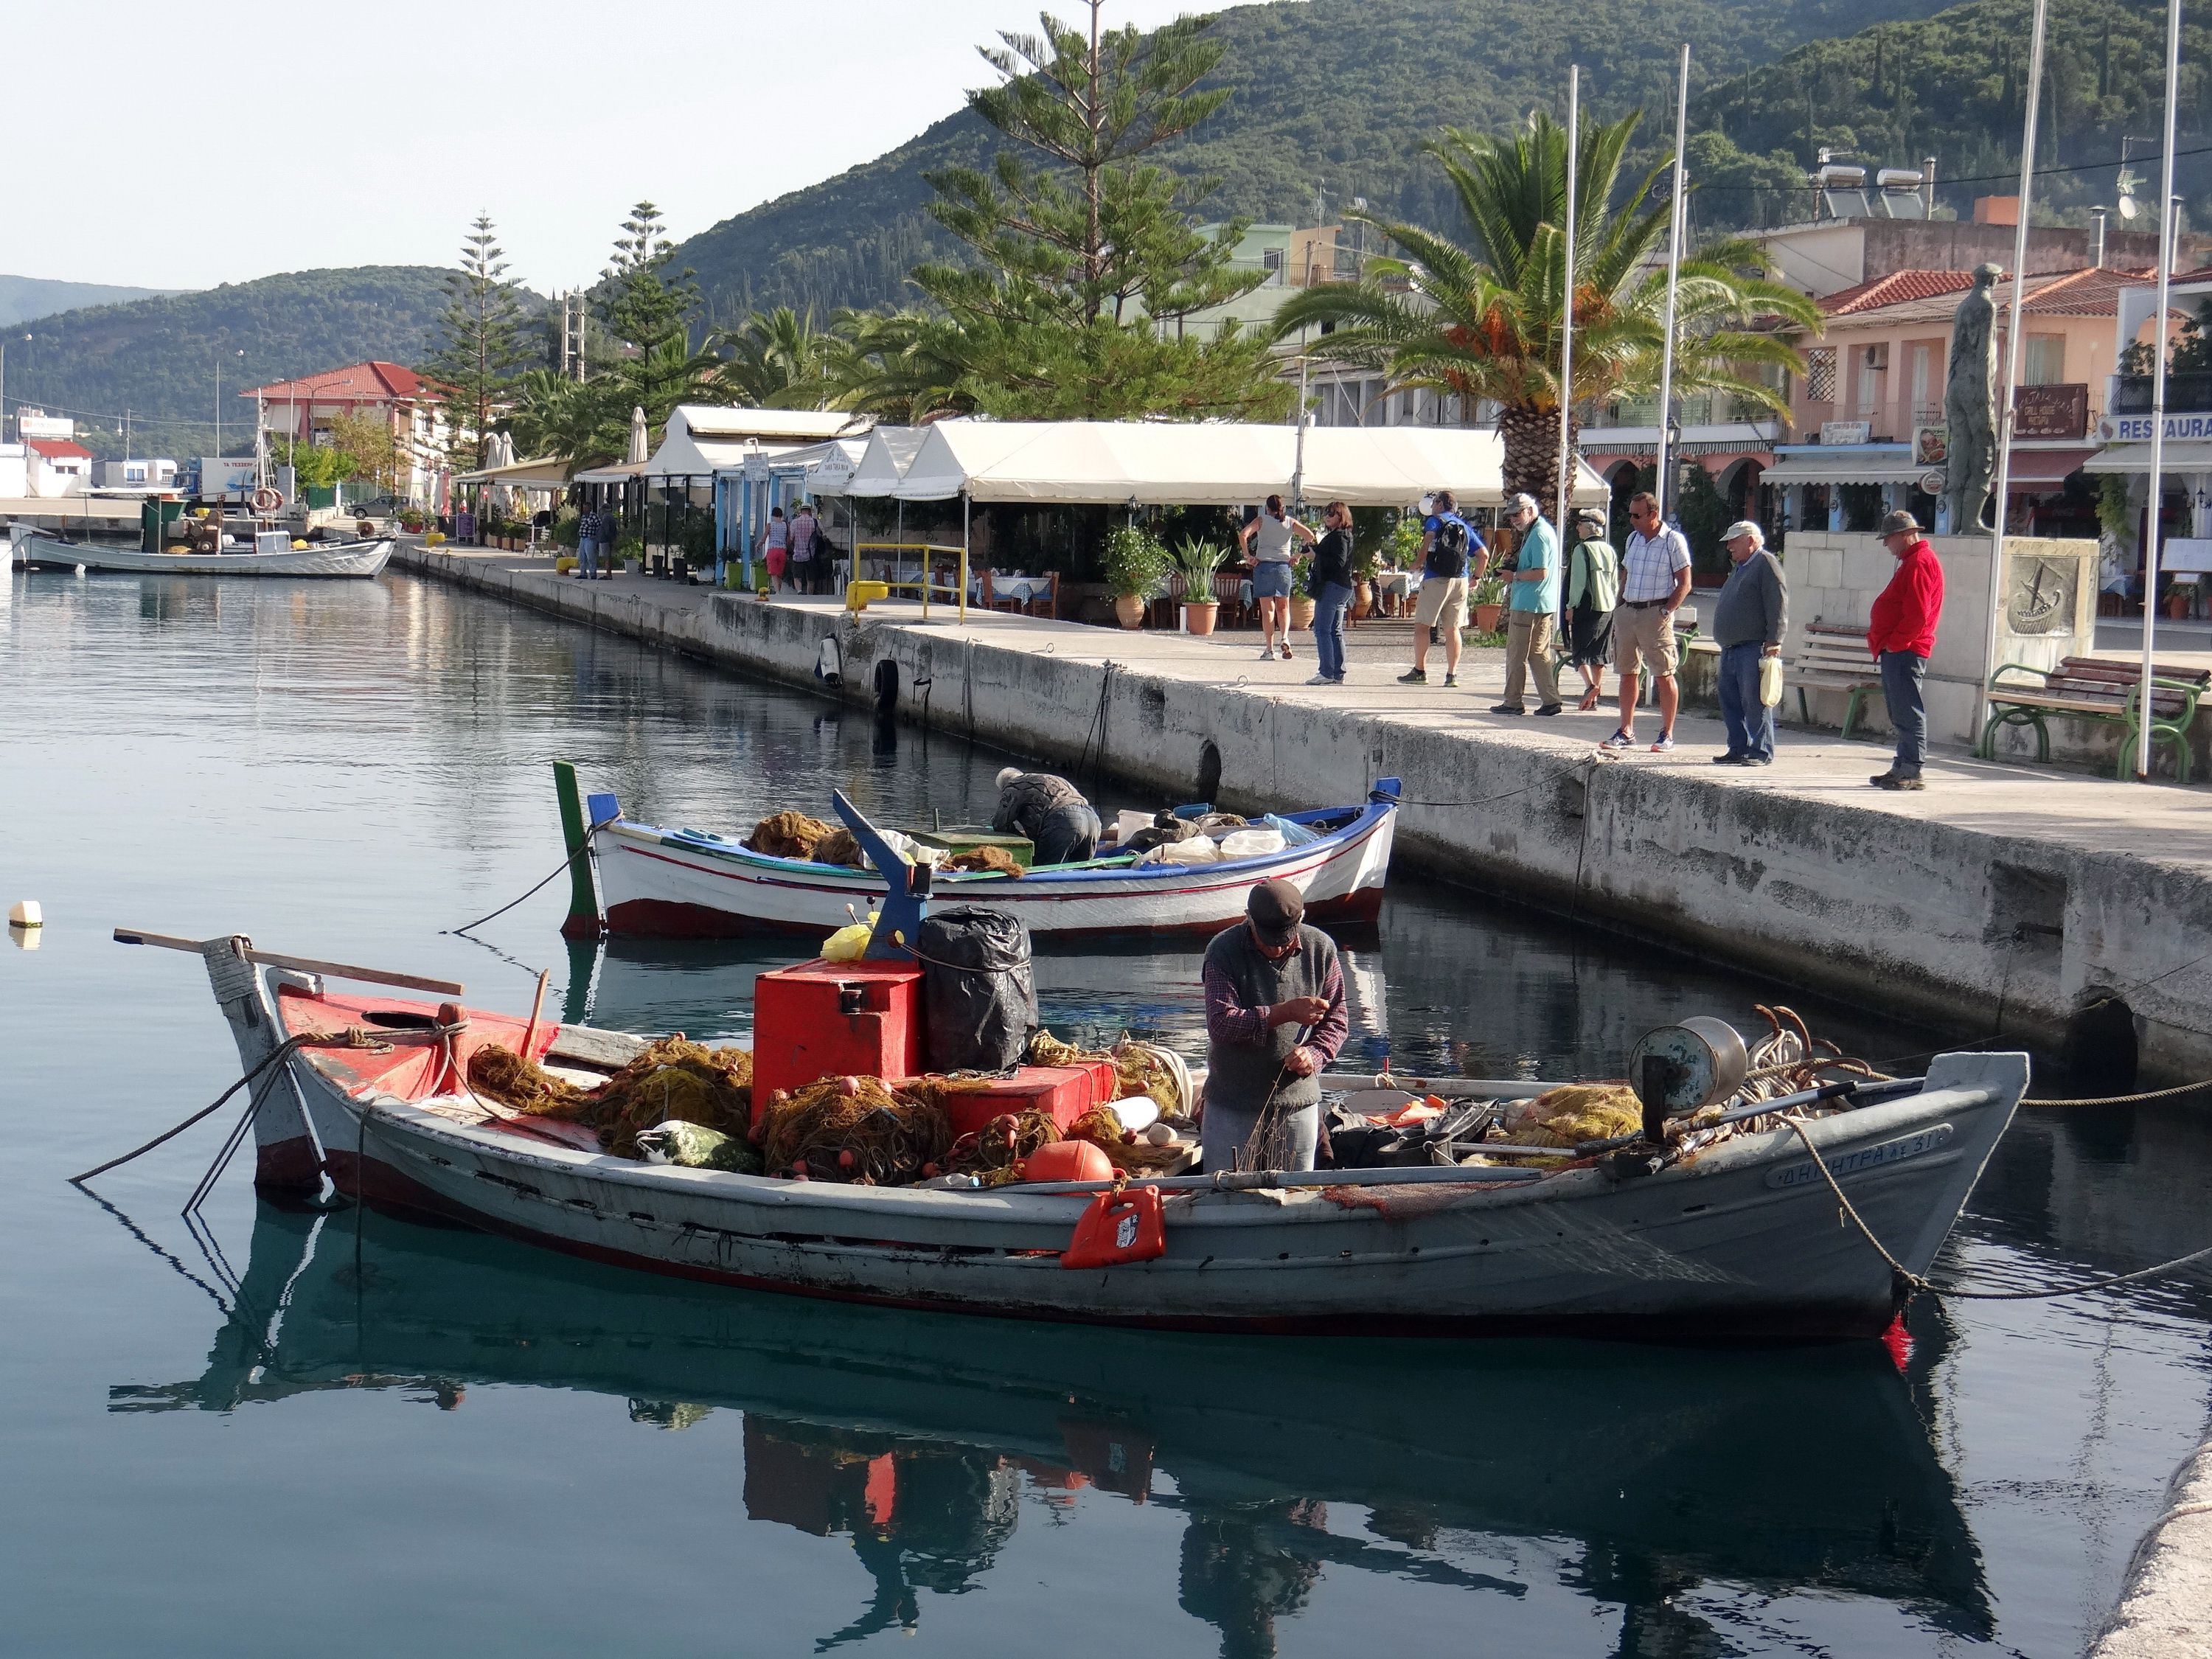 Fisherman at the small town of Sami, Kefalonia in Greece